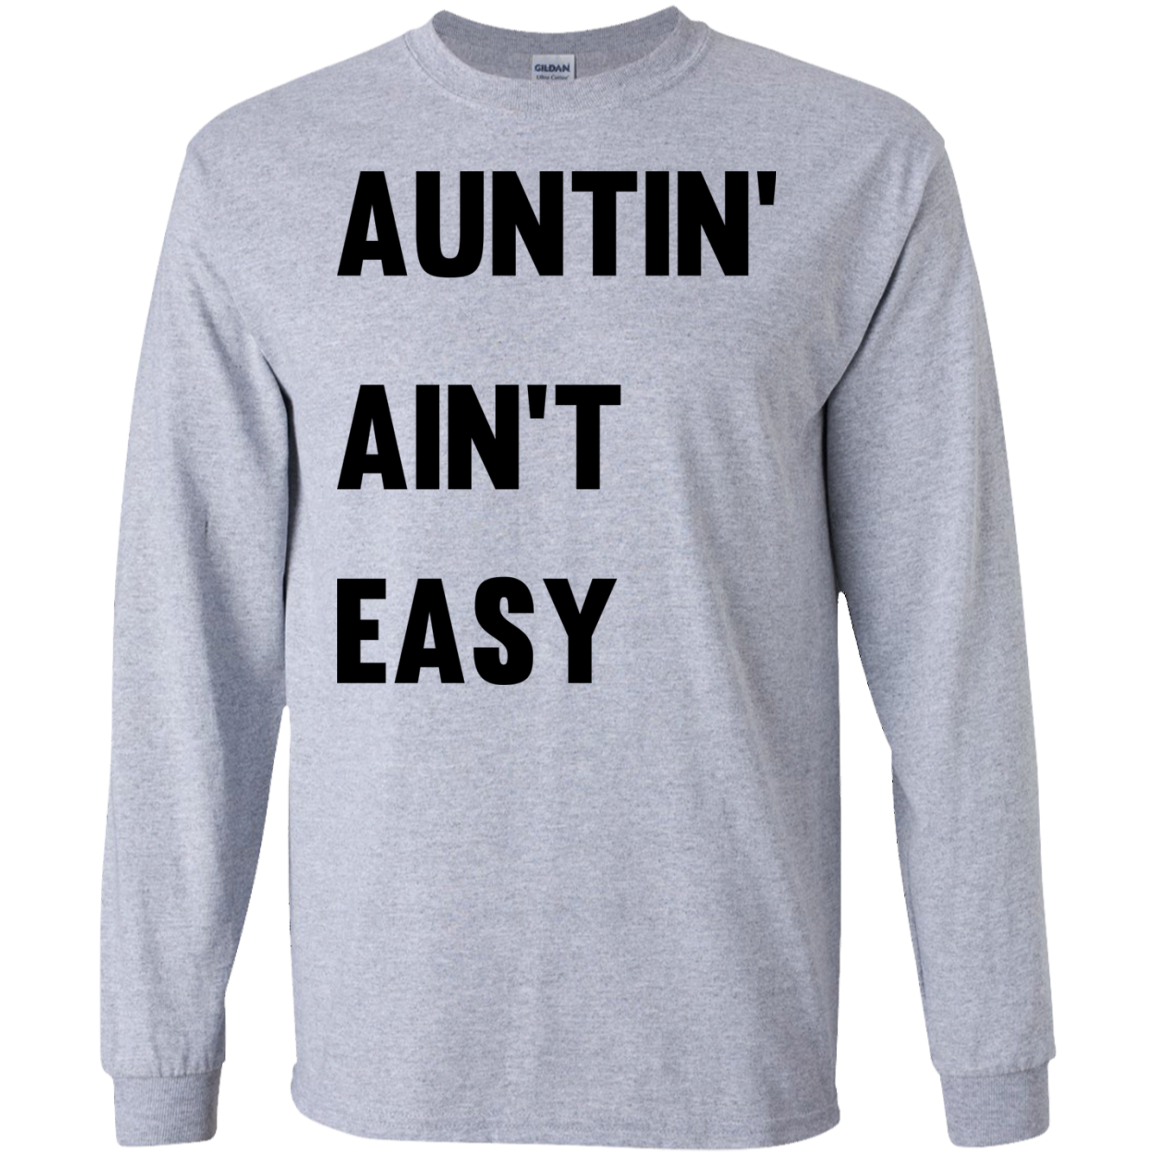 image 208px Aunt Shirt: Auntin' Ain't Easy T Shirts, Hoodies, Long Sleeves